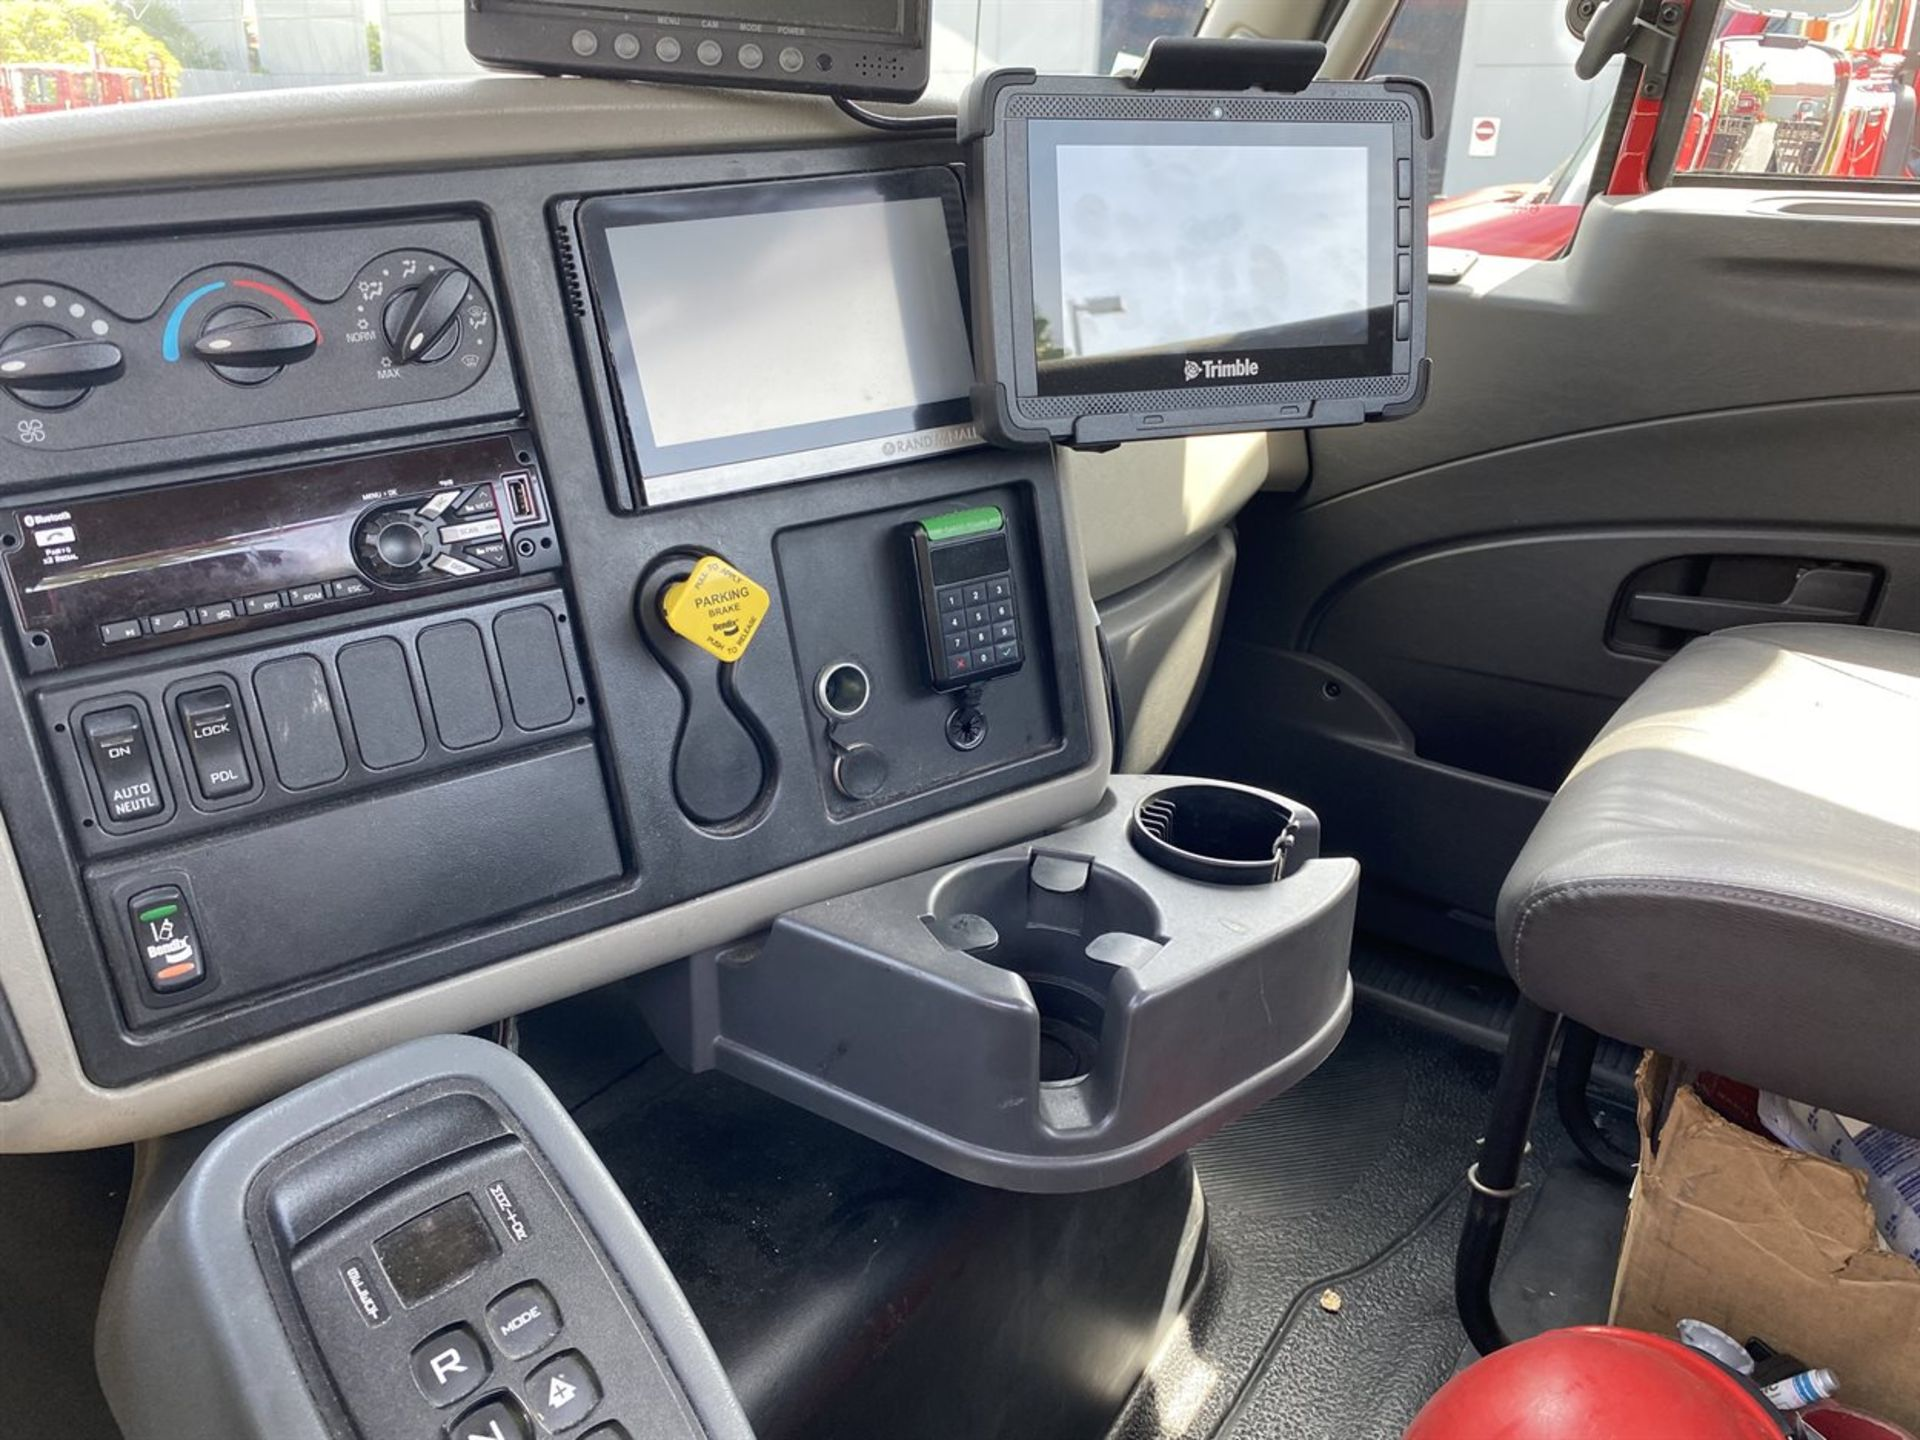 2016 INTERNATIONAL 18' Stake Bed Truck, VIN 3HTHXSNR6GN132508, 107,216 Miles at time of inspection - Image 6 of 18